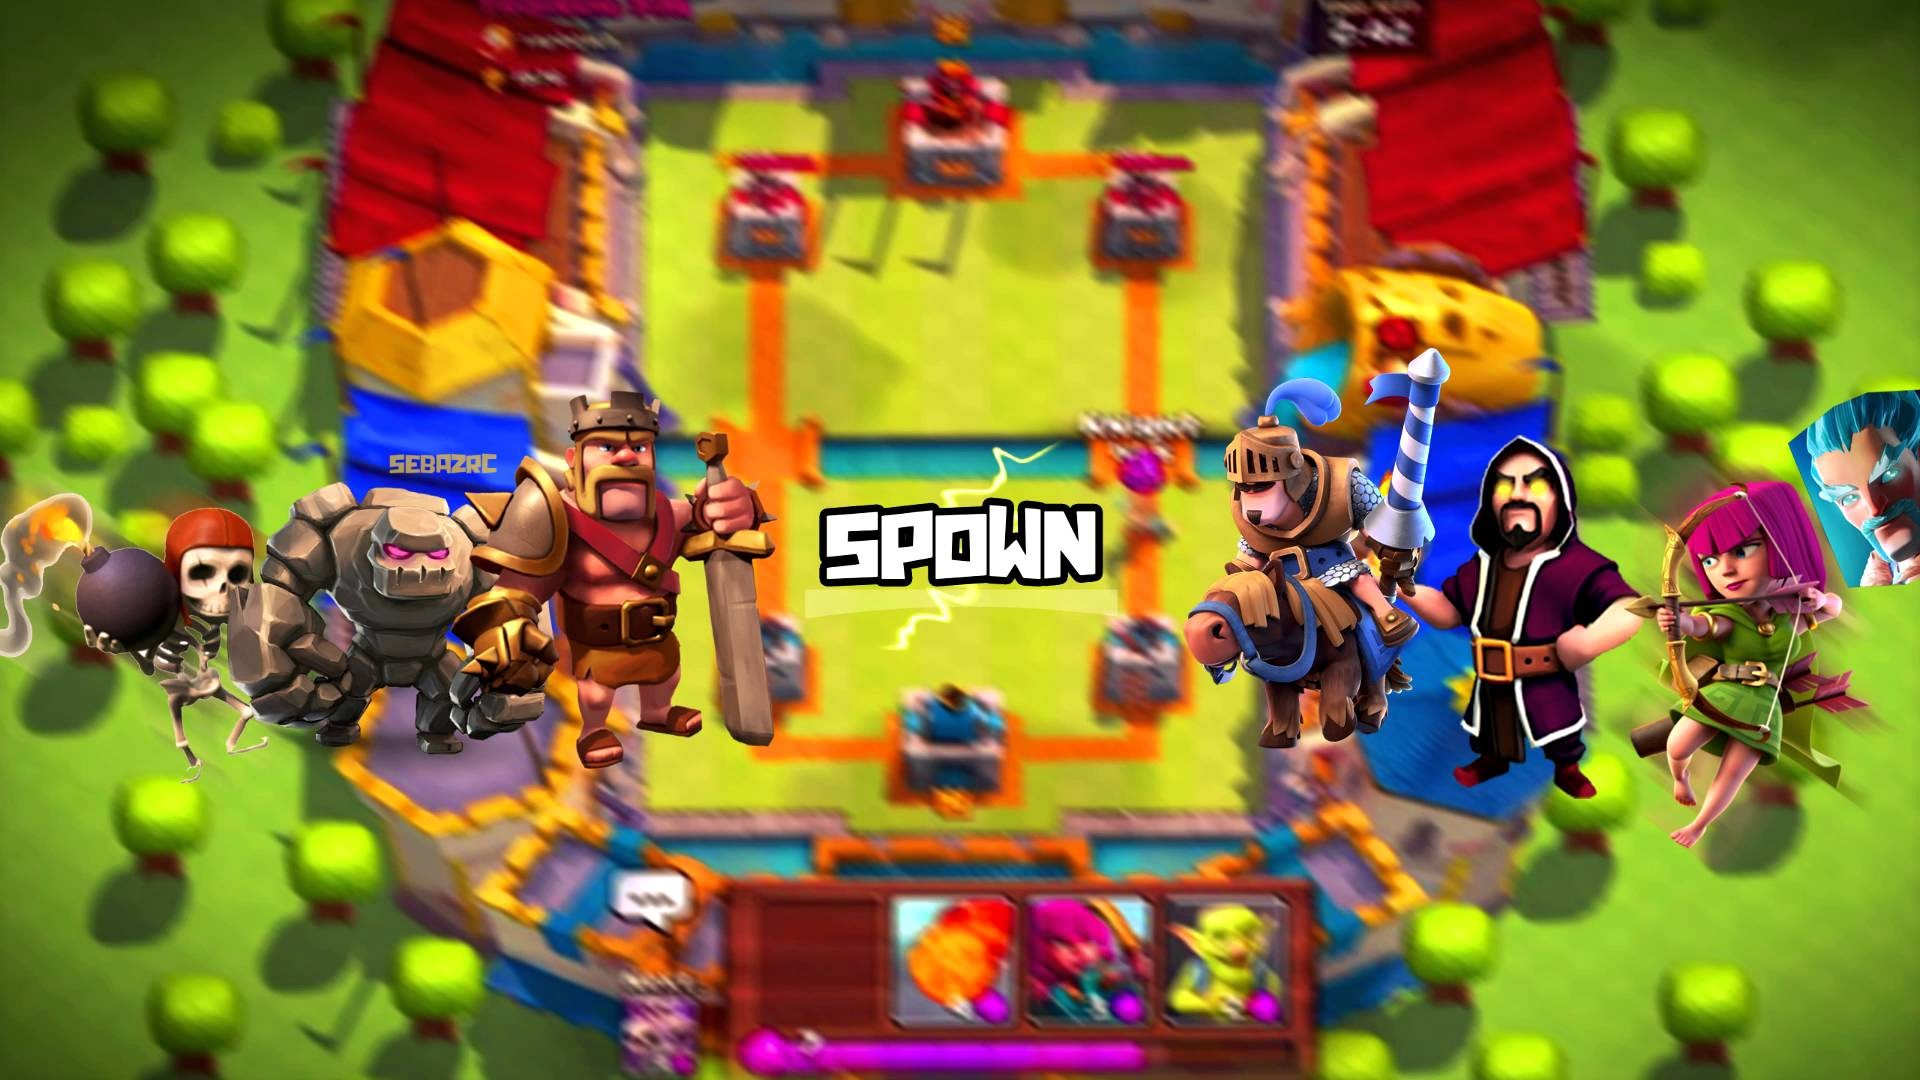 Clash royale background download free stunning full hd wallpapers for desktop mobile laptop - Clash royale 2560x1440 ...